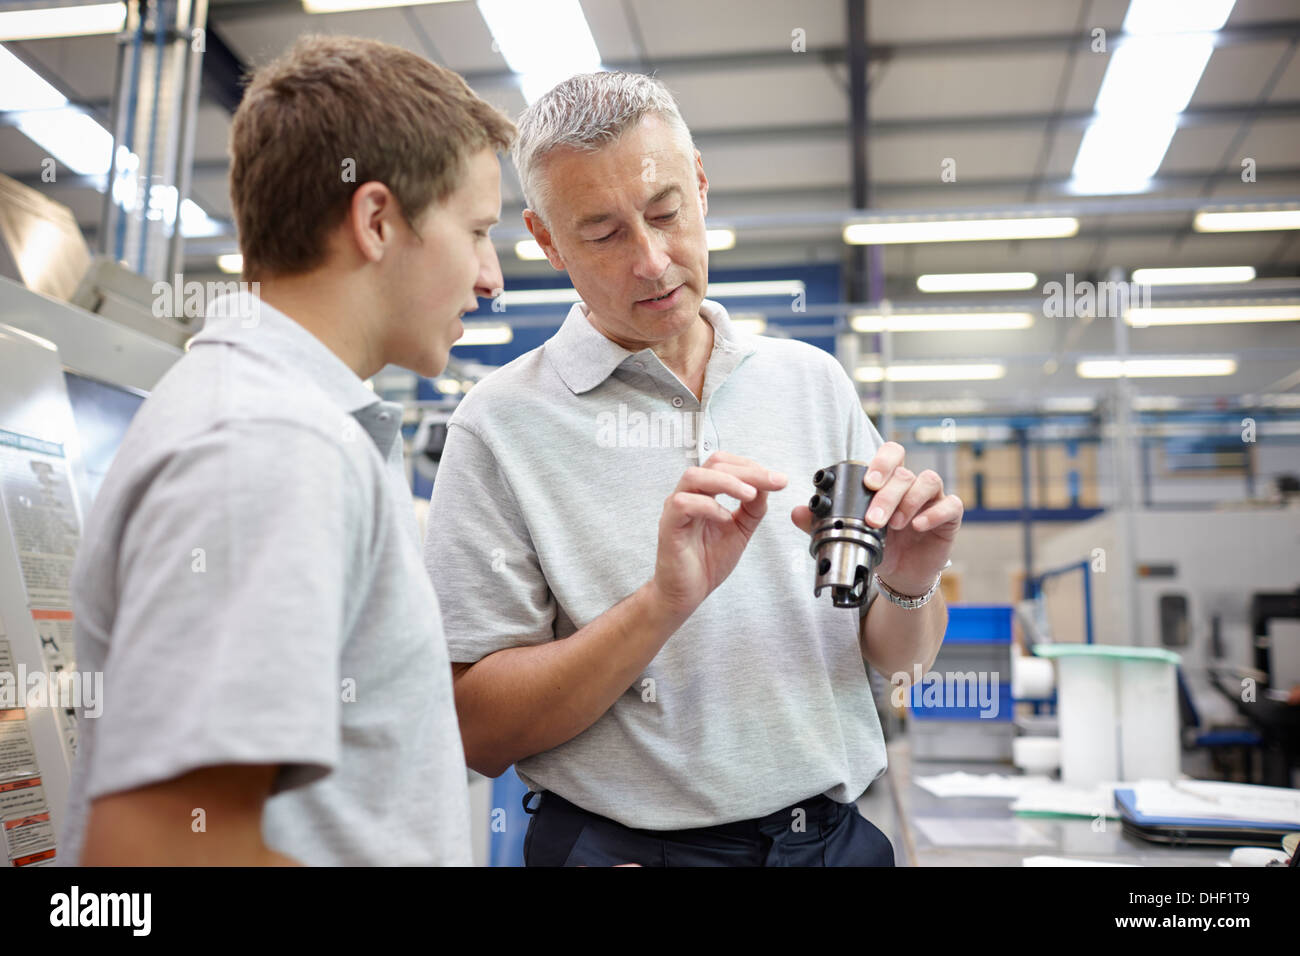 Manager and working looking at component in engineering factory - Stock Image